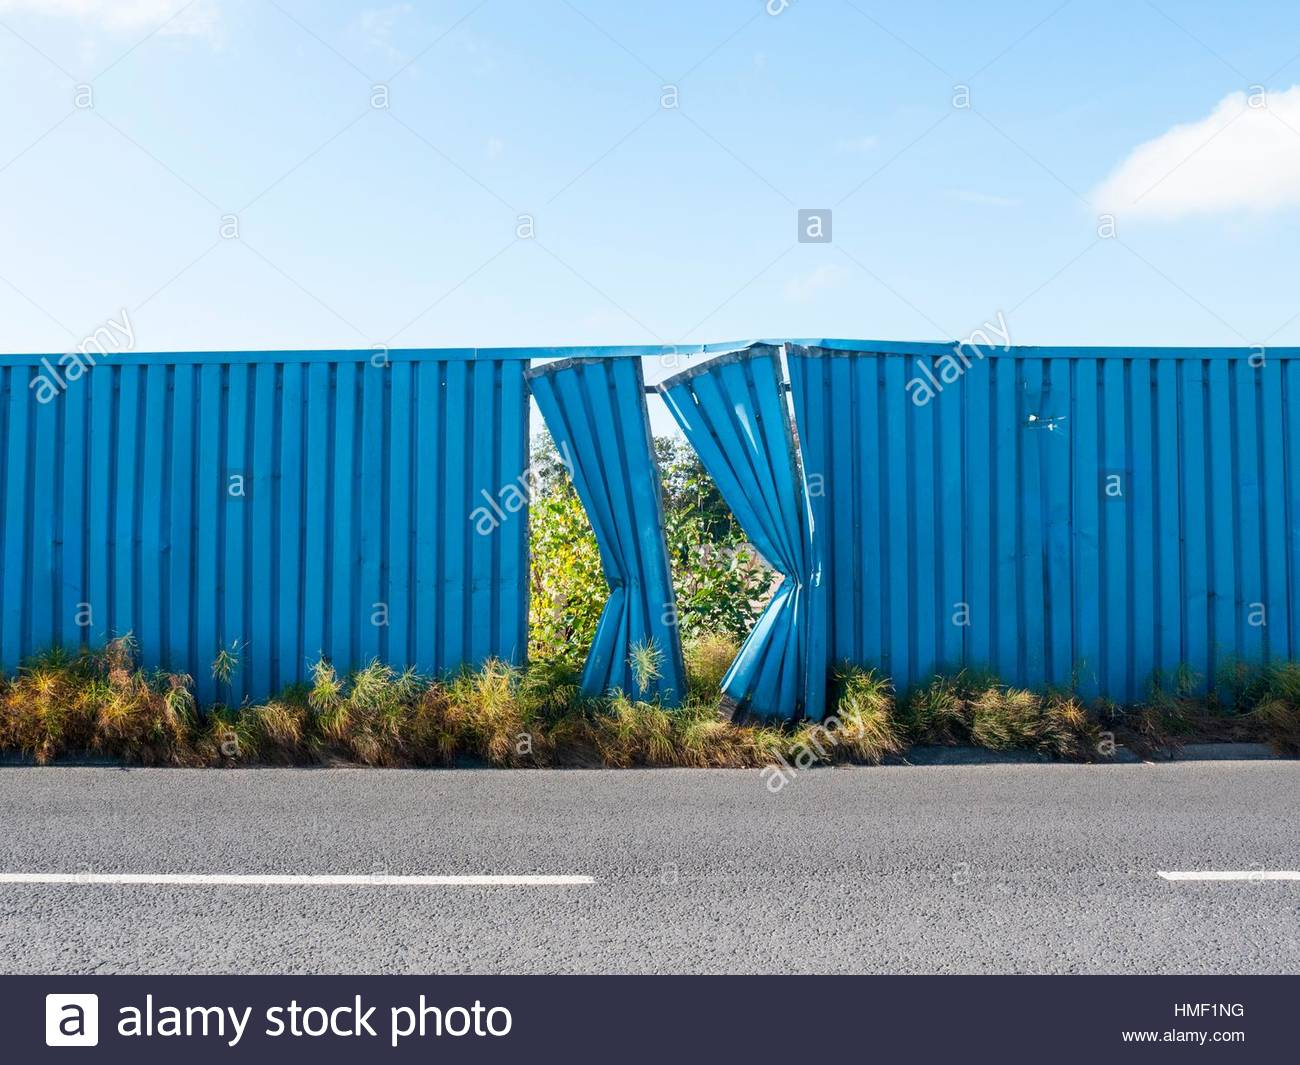 Two blue fence panels damaged on the side of a road in cheshire stock photo two blue fence panels damaged on the side of a road in cheshire uk baanklon Images